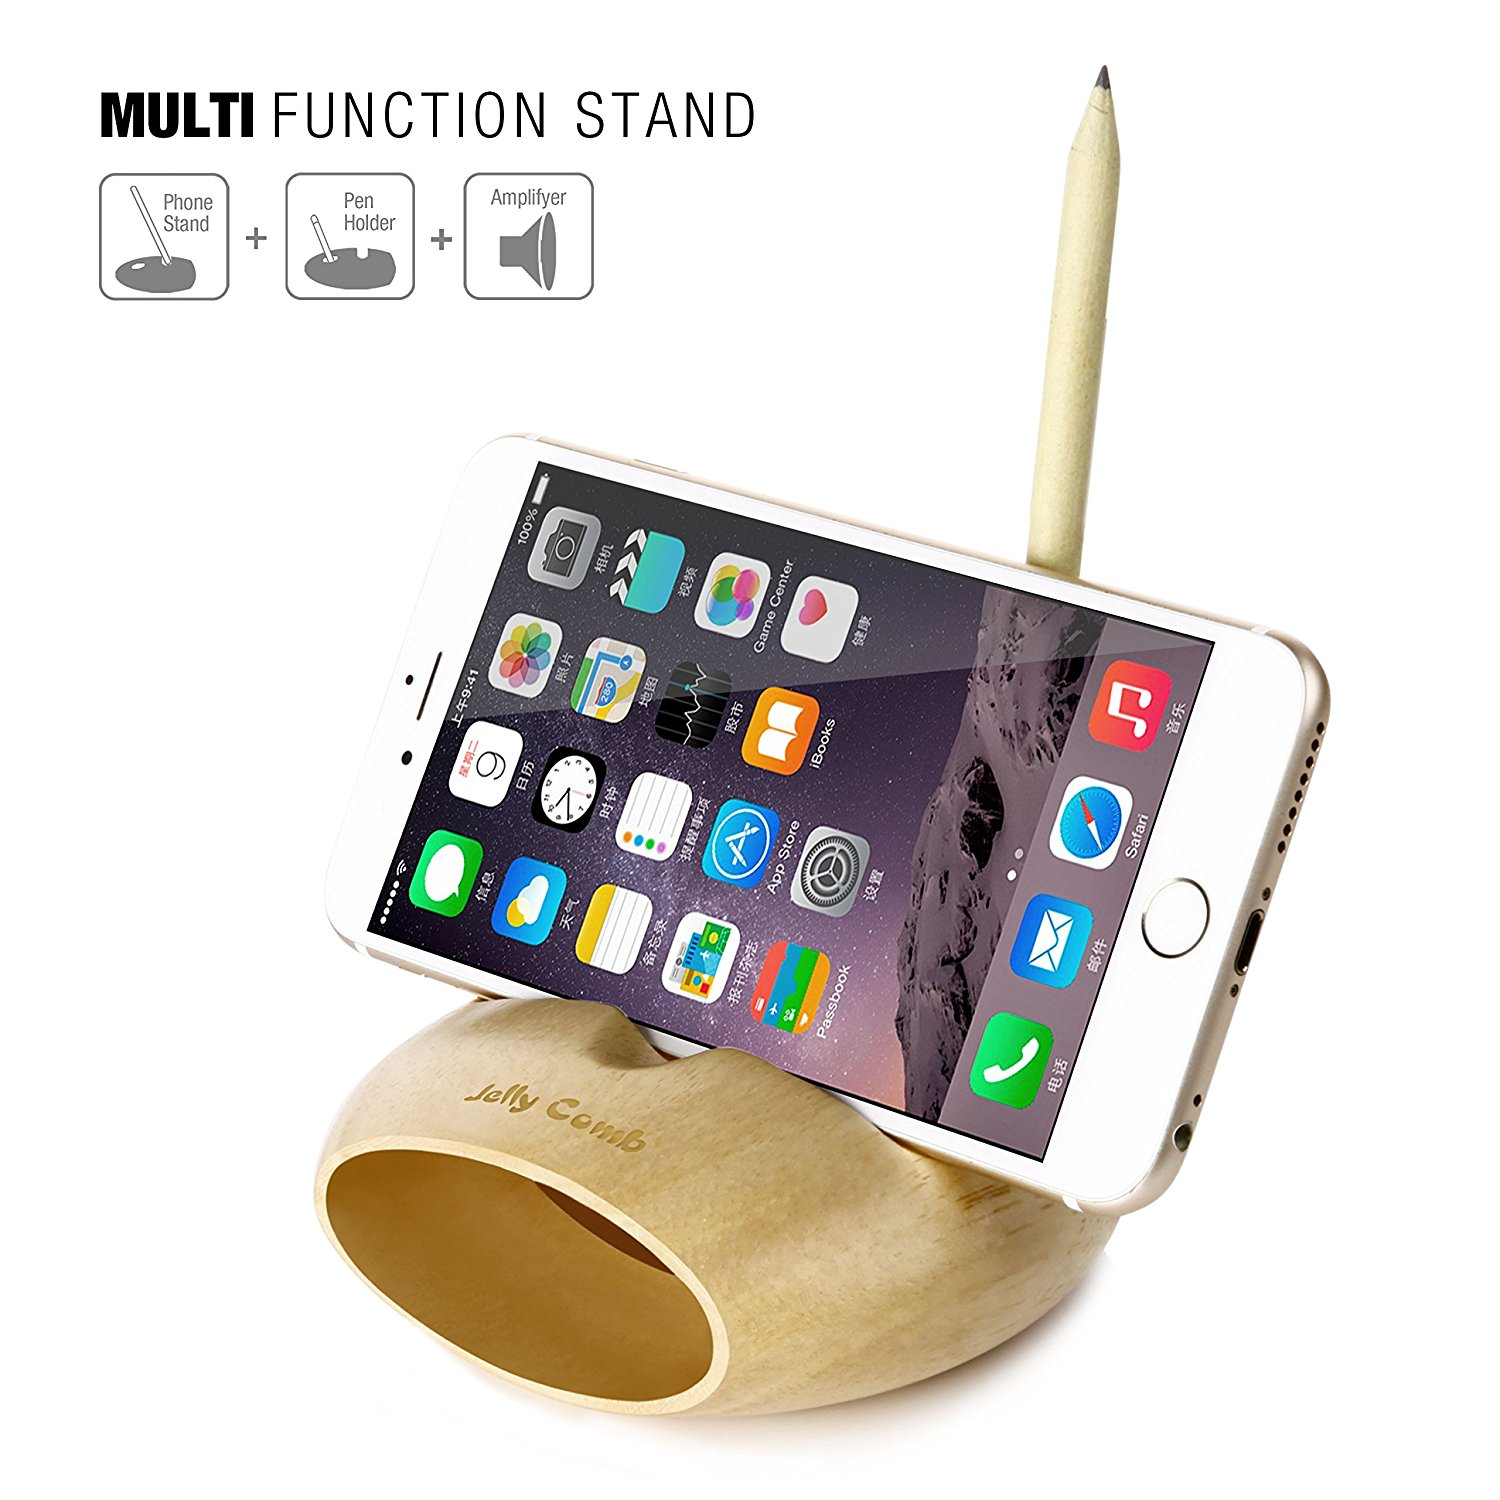 Cell Phone Charging Dock Jelly Comb Desk Wood Holder Stand Mobile